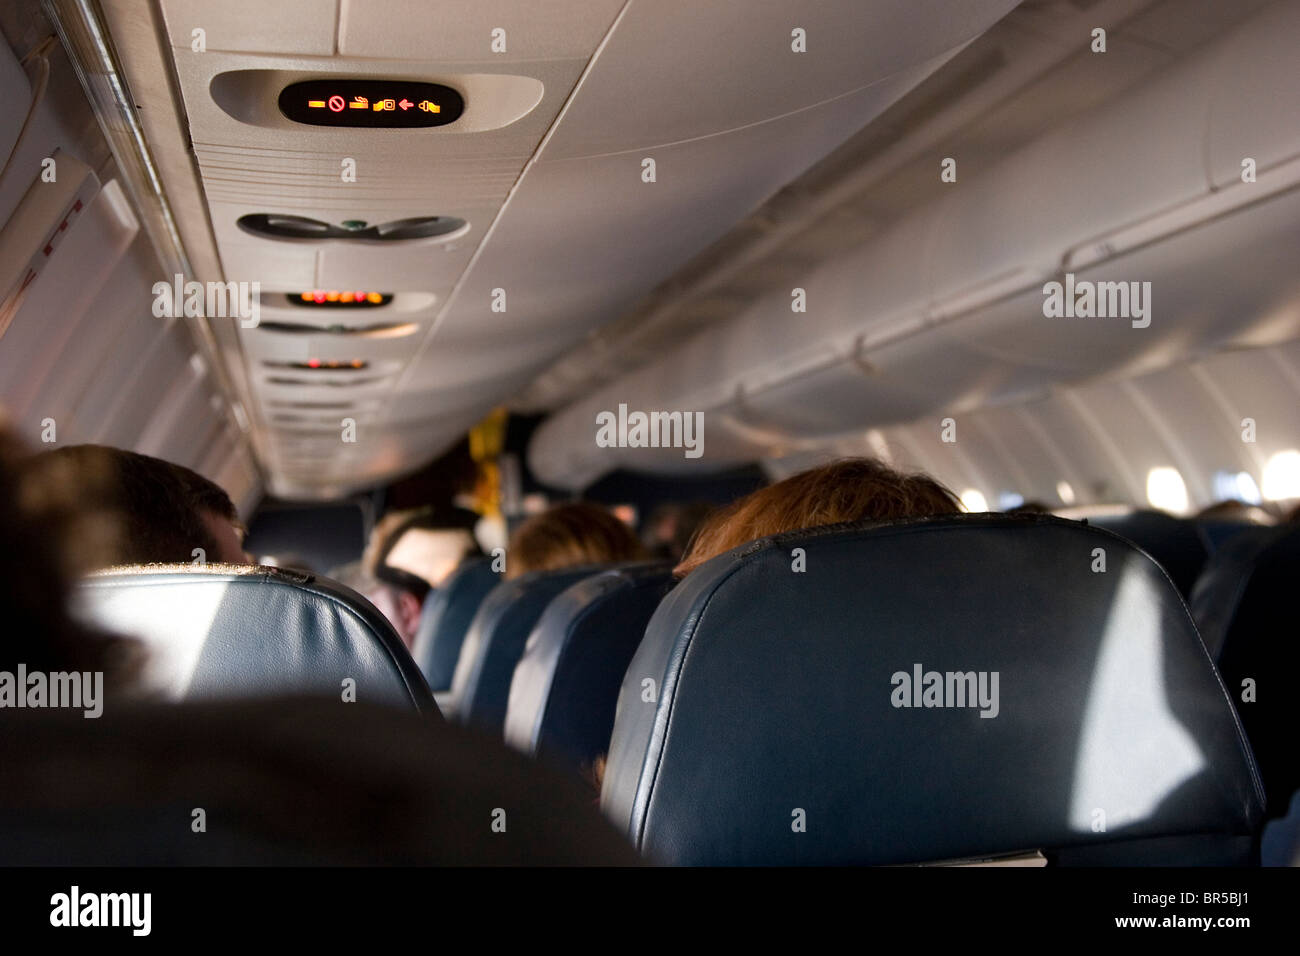 Airplane interior with rows of seated airline passengers - Stock Image